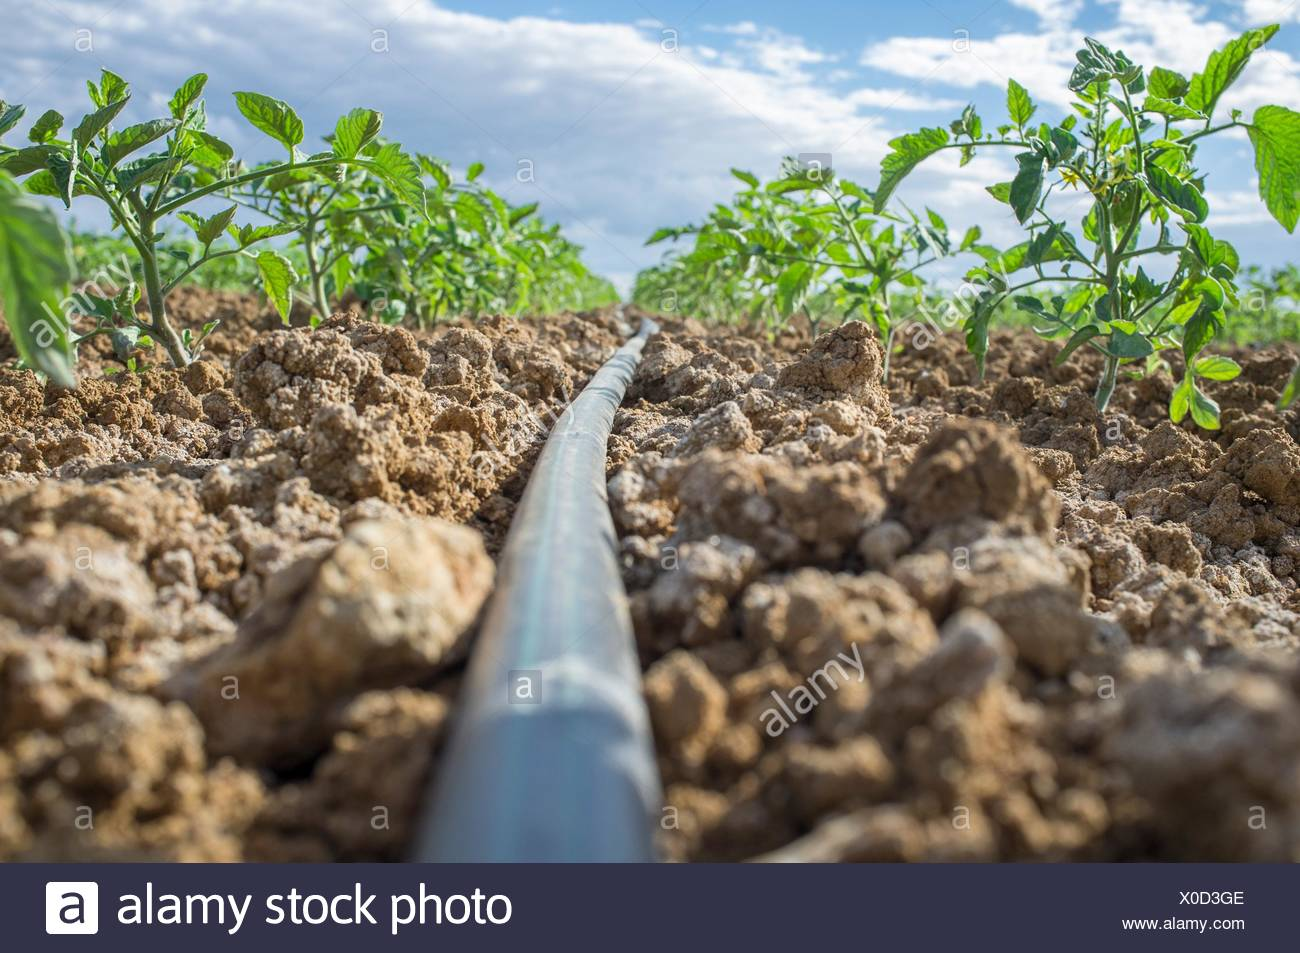 Young tomato plant growing with drip irrigation system. Ground level view. - Stock Image